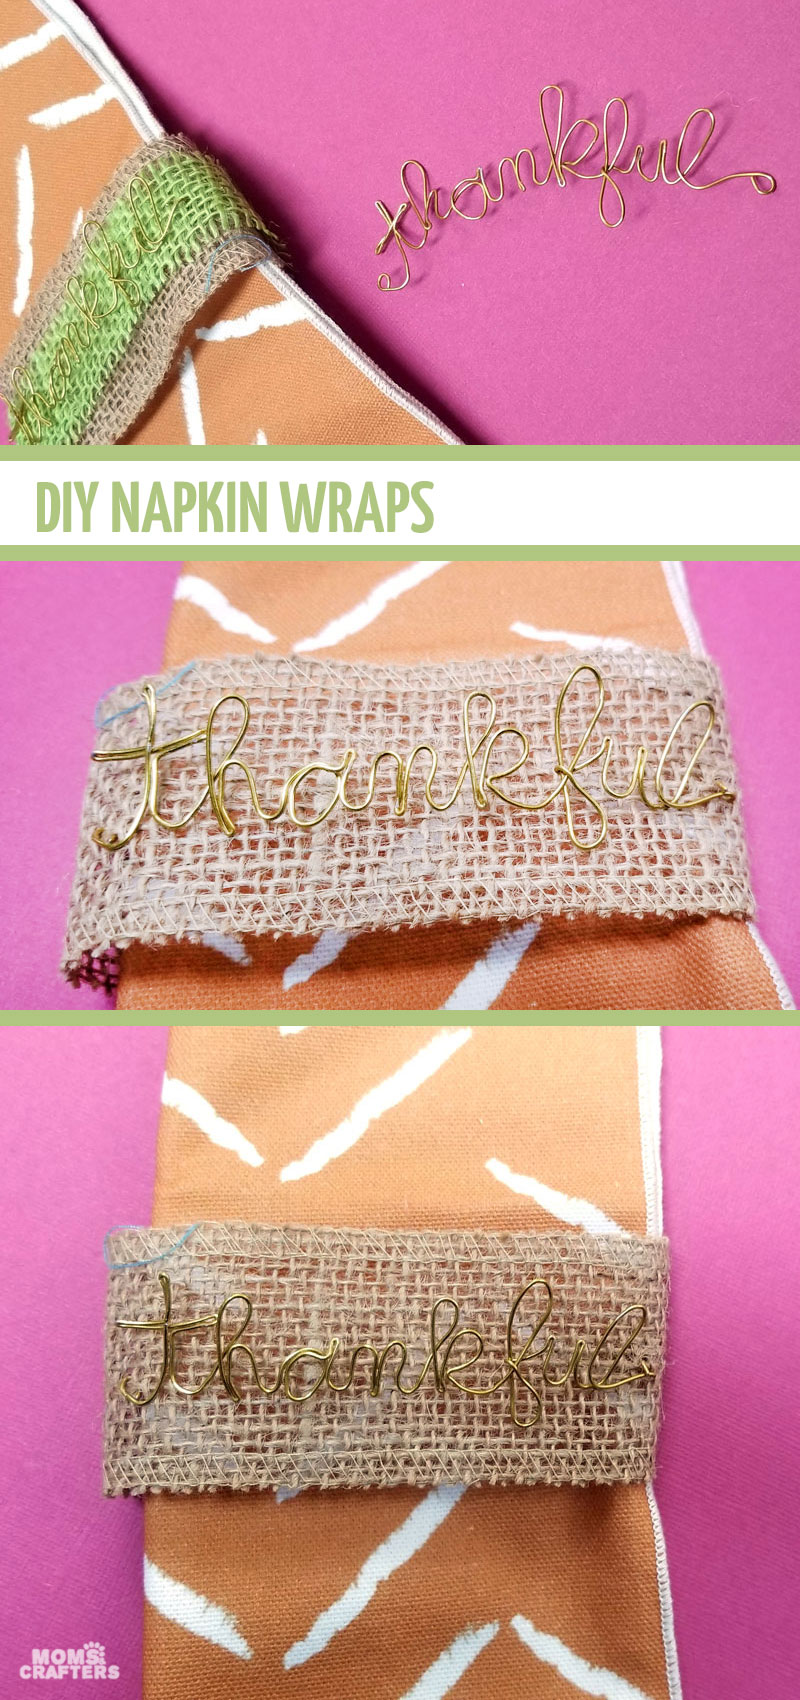 Click to learn how to make your own DIY Thanksgiving napkin rings with wire and burlap